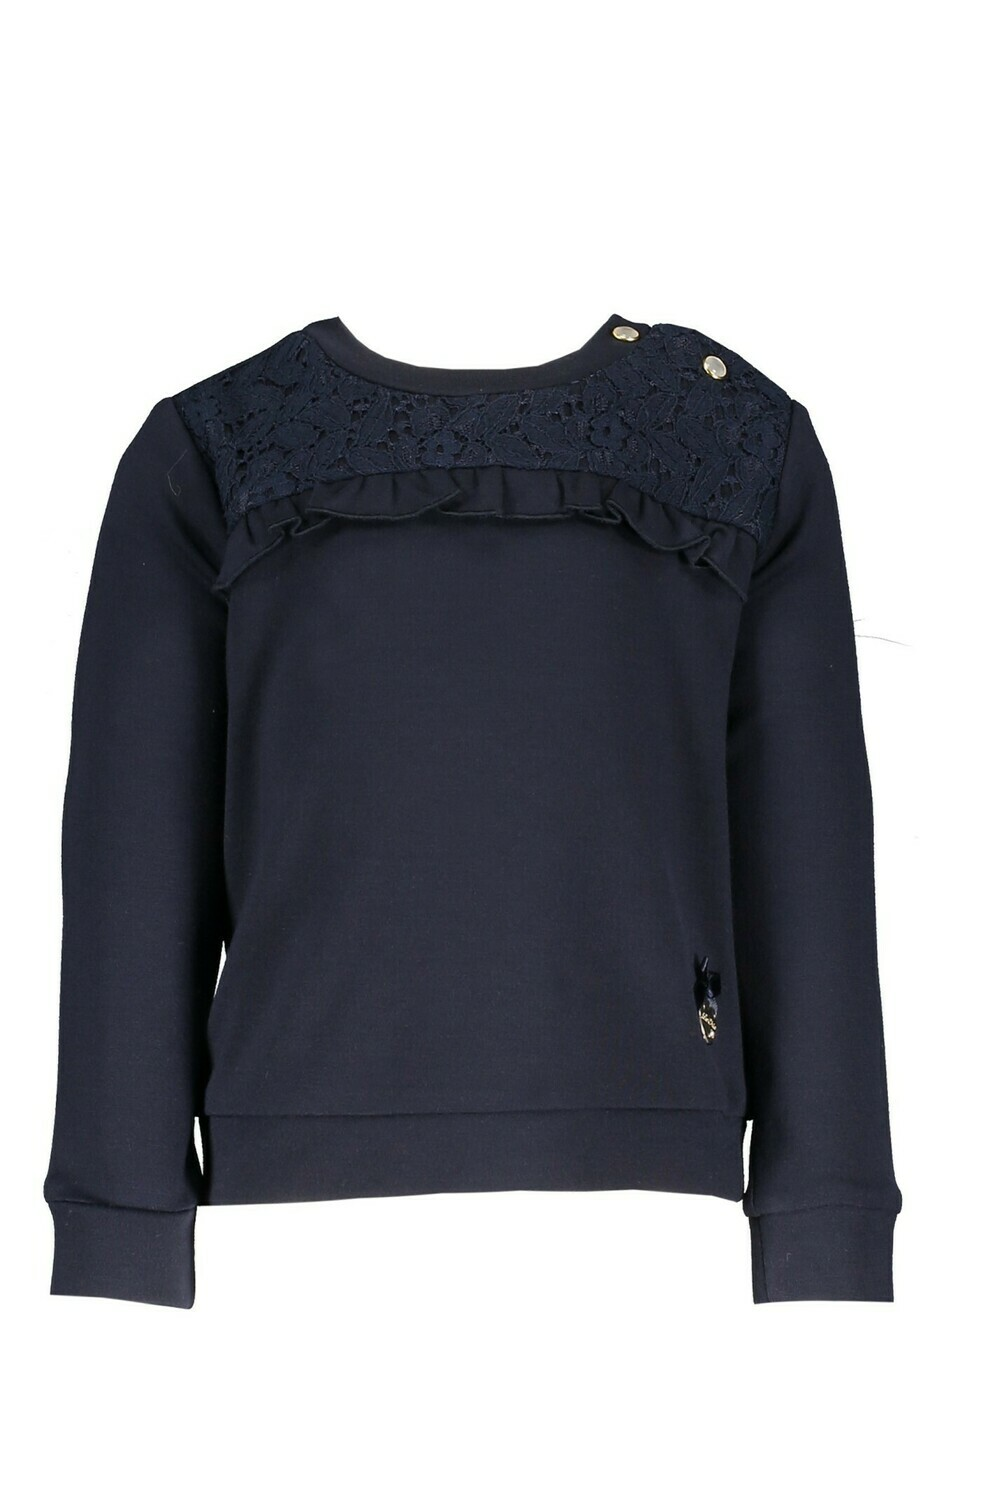 Le Chic Trui donkerblauw met kant